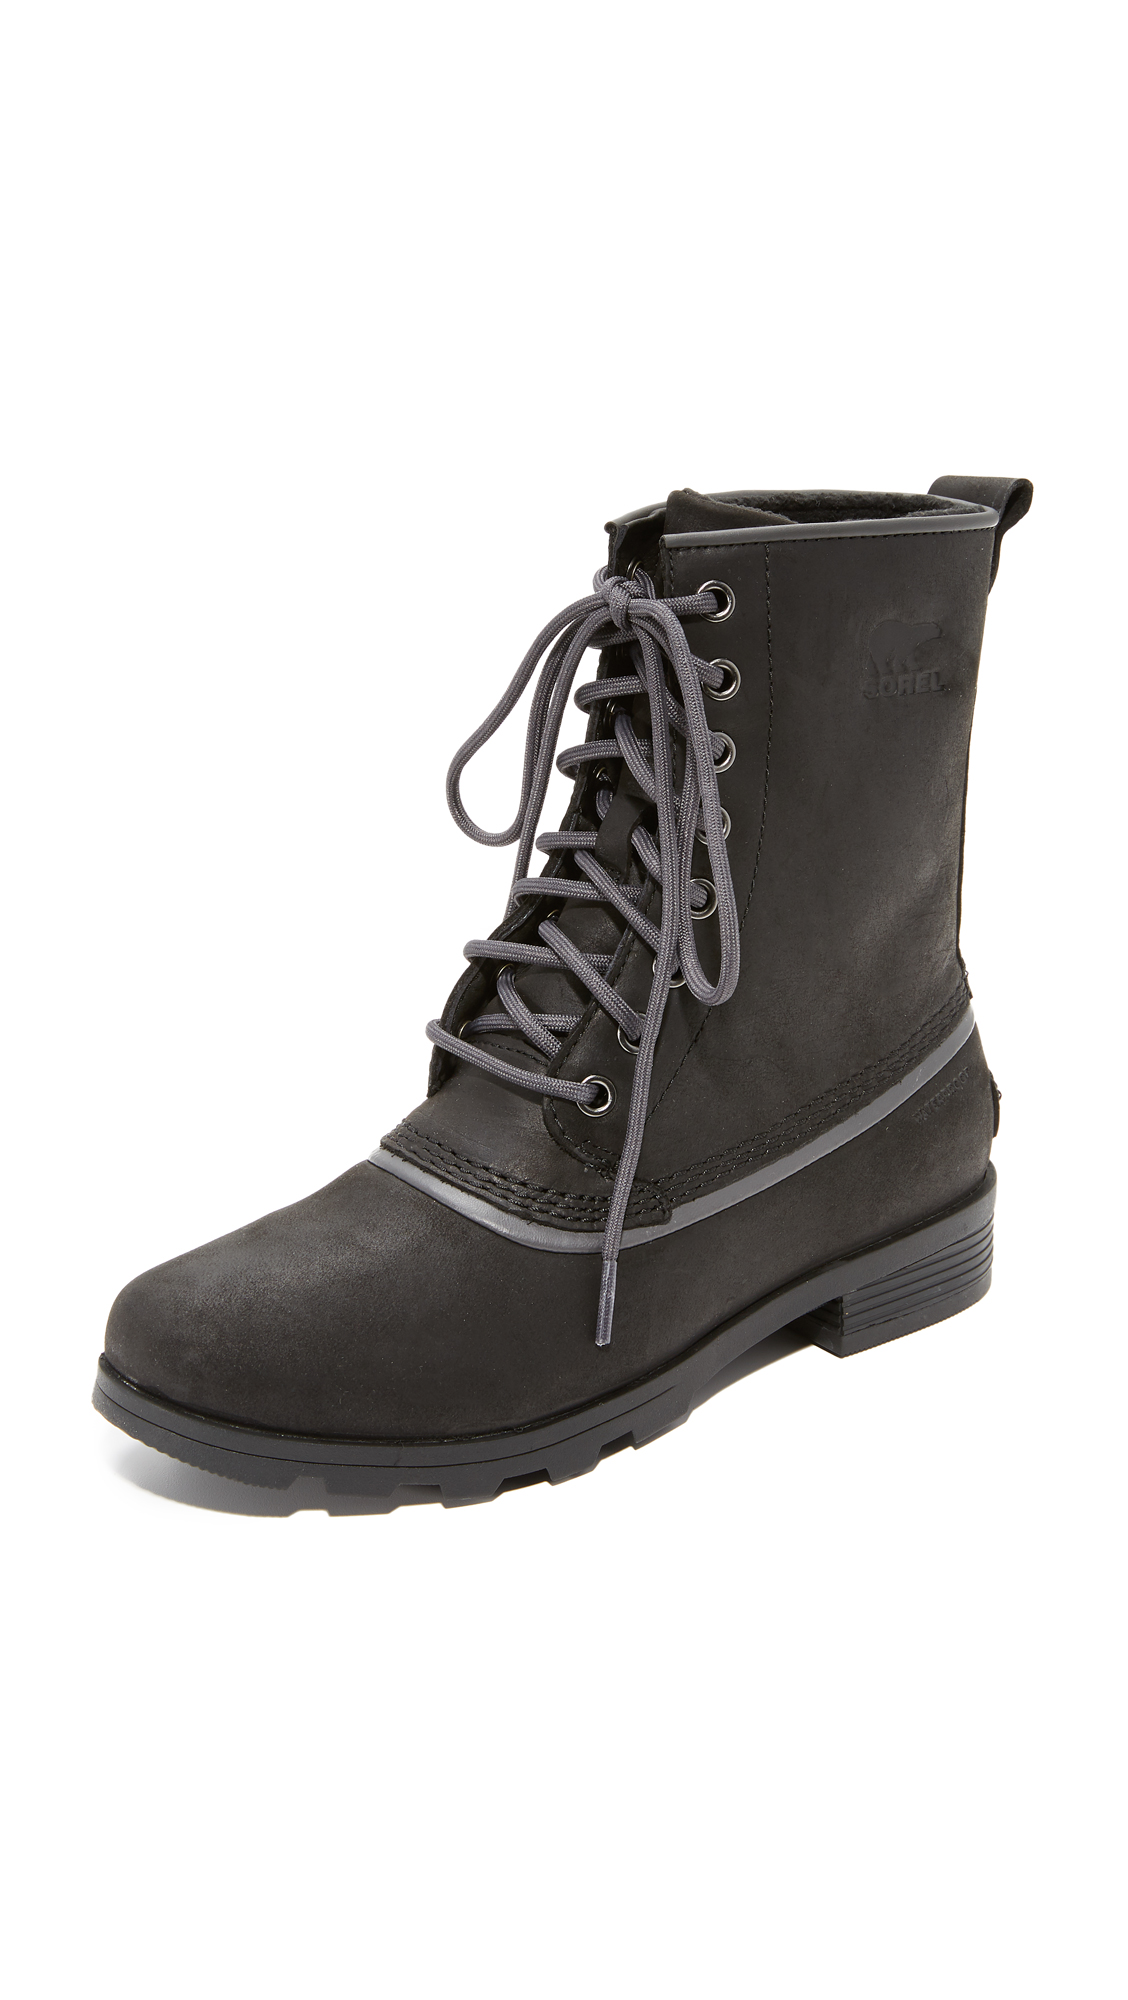 Sorel Emelie 1964 Booties - Black